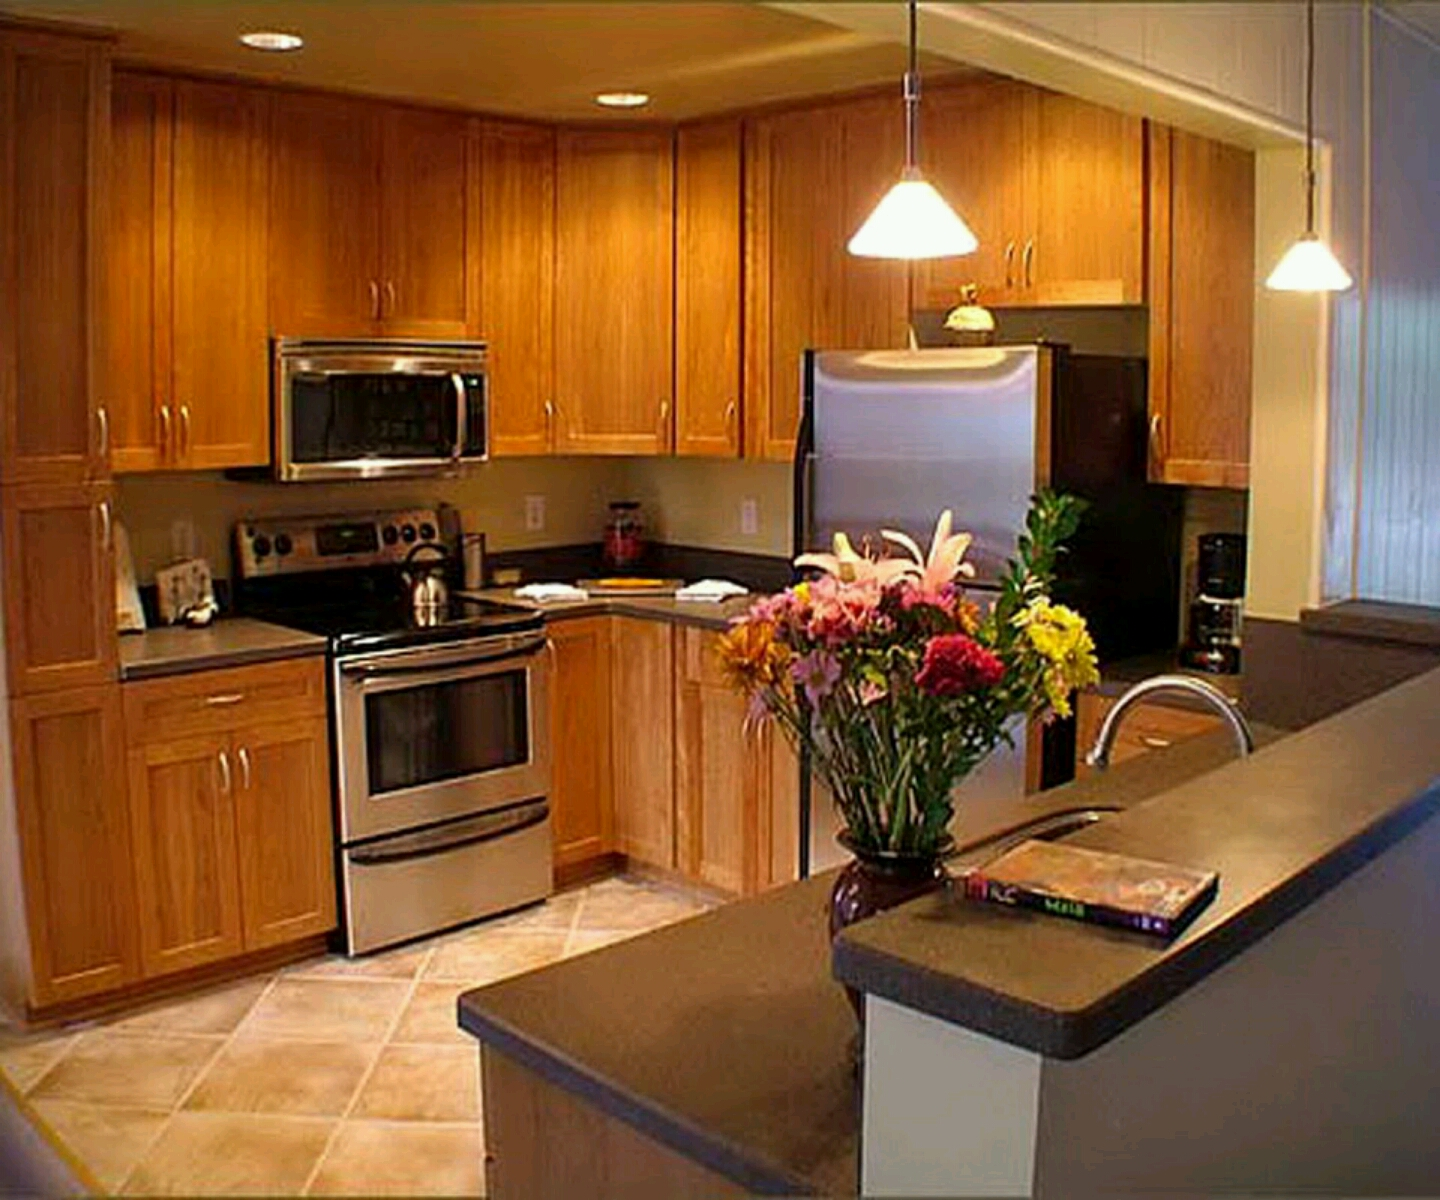 Modern wooden kitchen cabinets designs. ~ Furniture Gallery